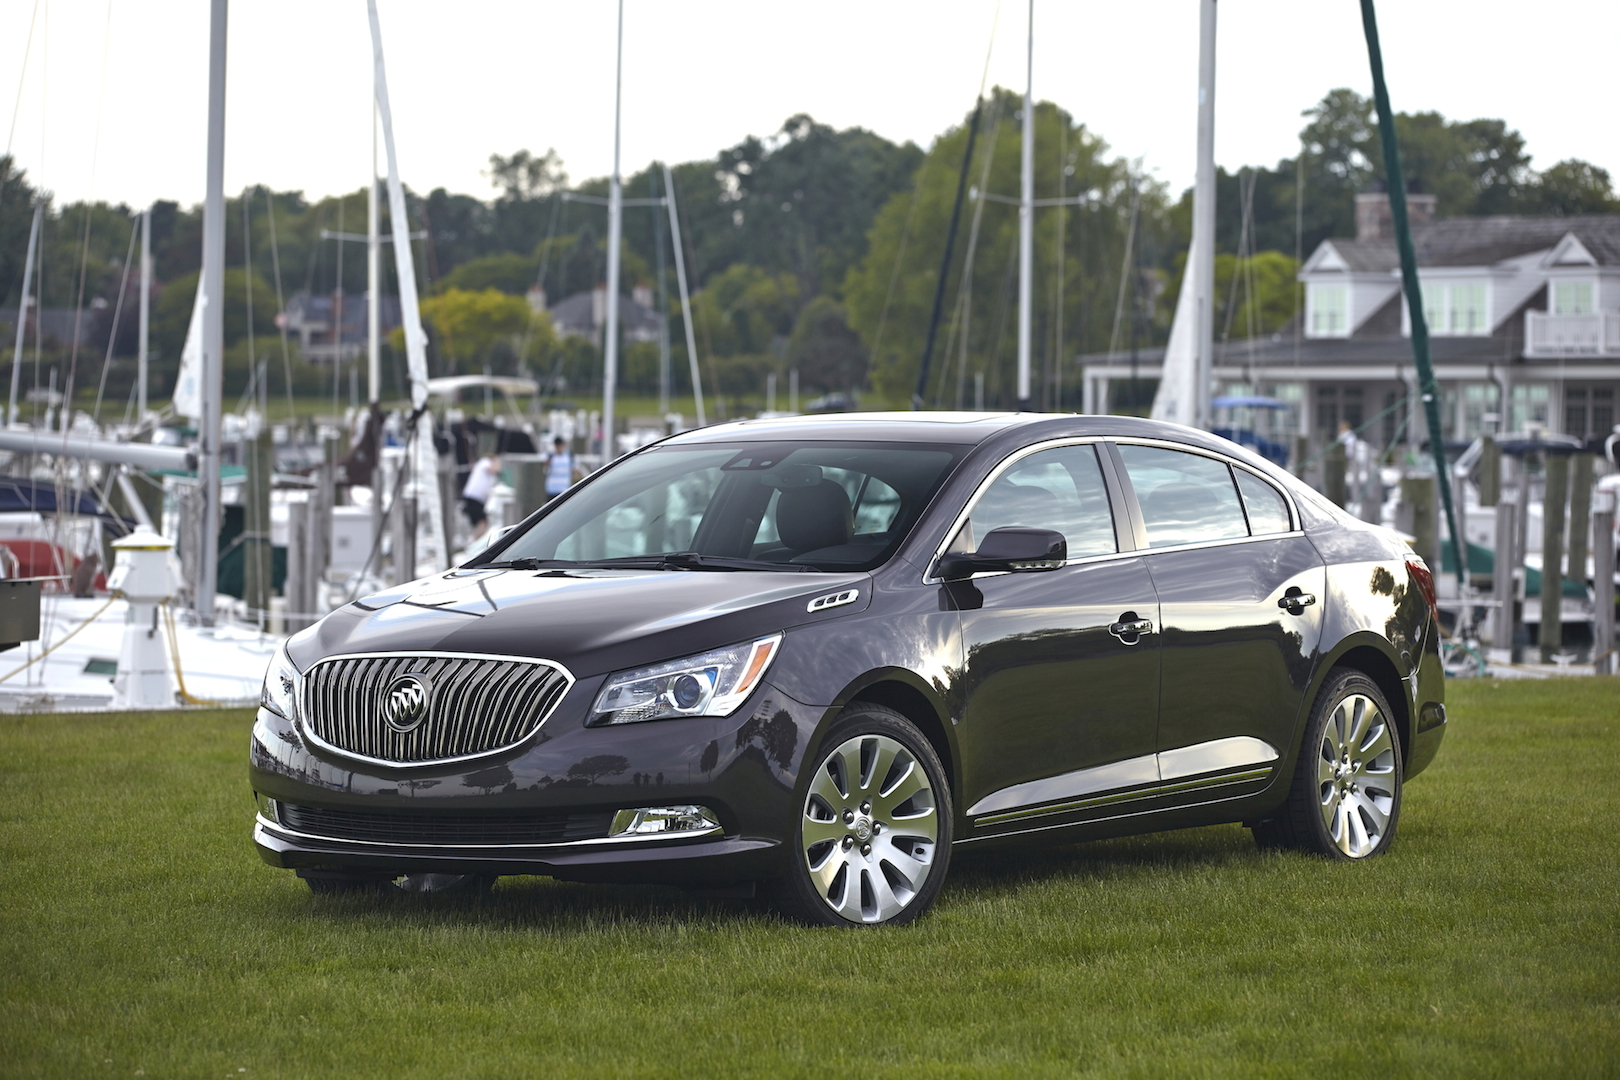 2015 buick lacrosse 100467273. Black Bedroom Furniture Sets. Home Design Ideas